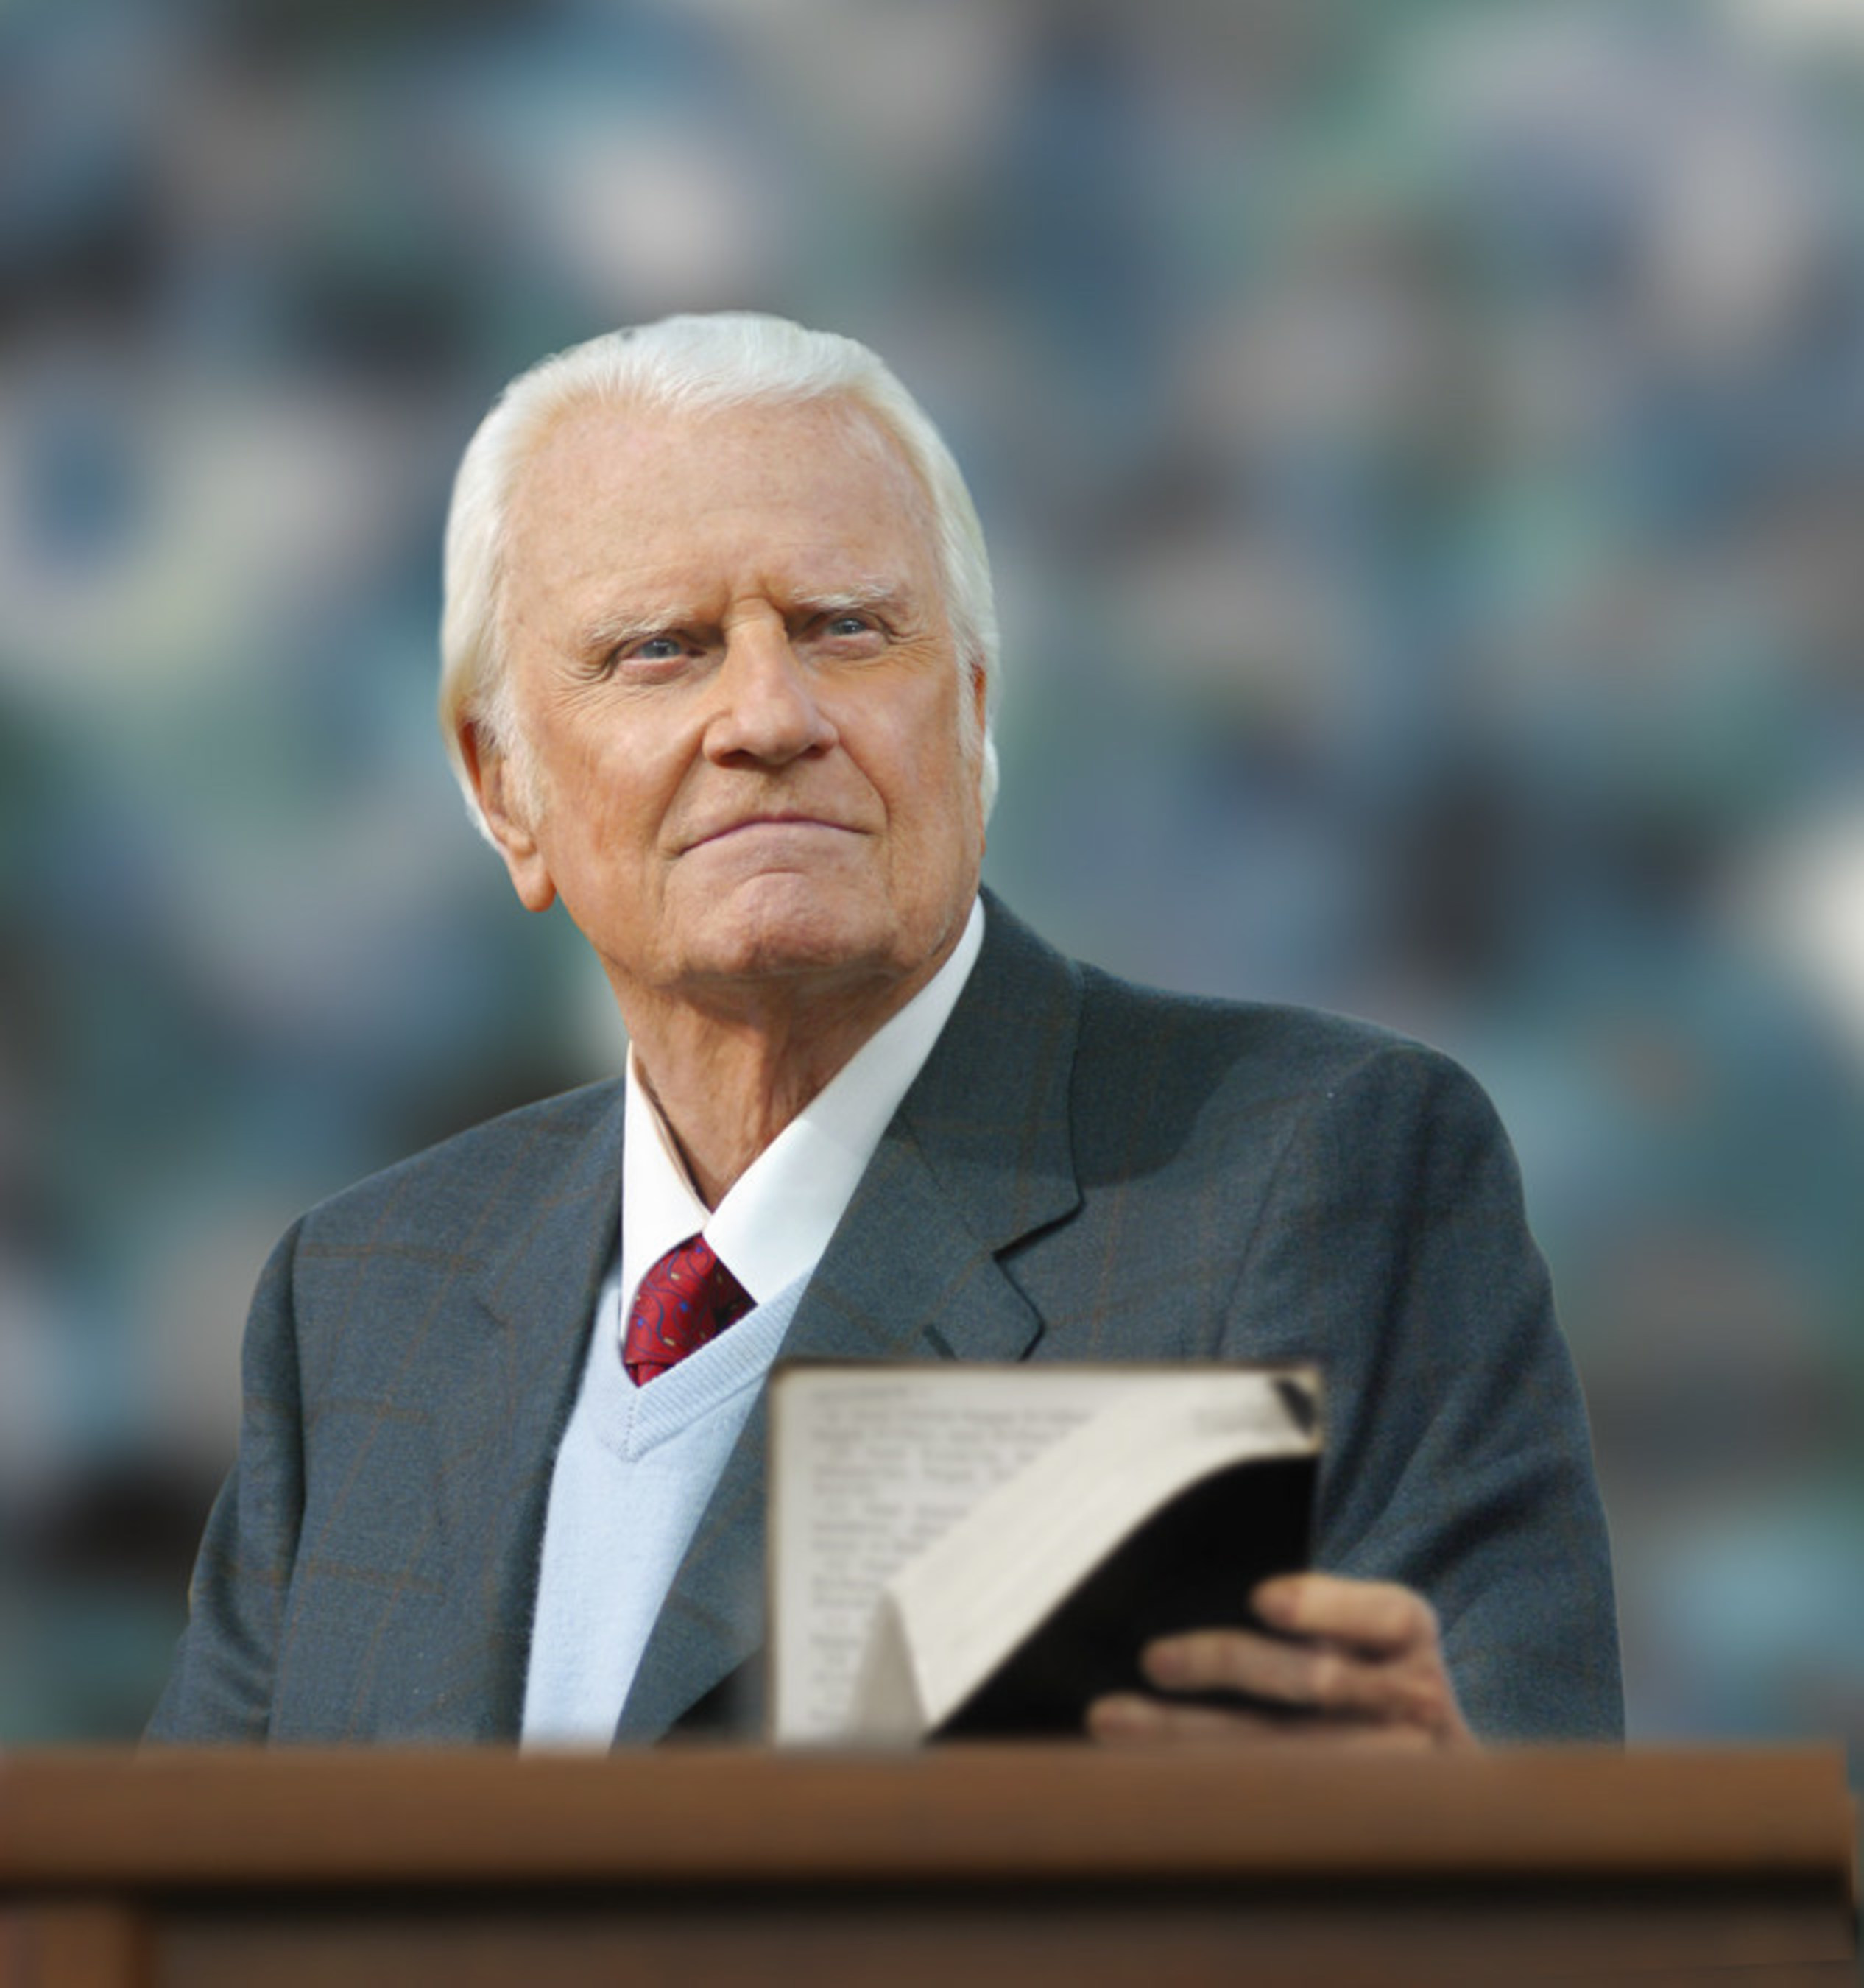 Join TBN Friday Nov. 6th as We Honor Billy Graham on His 97th Birthday